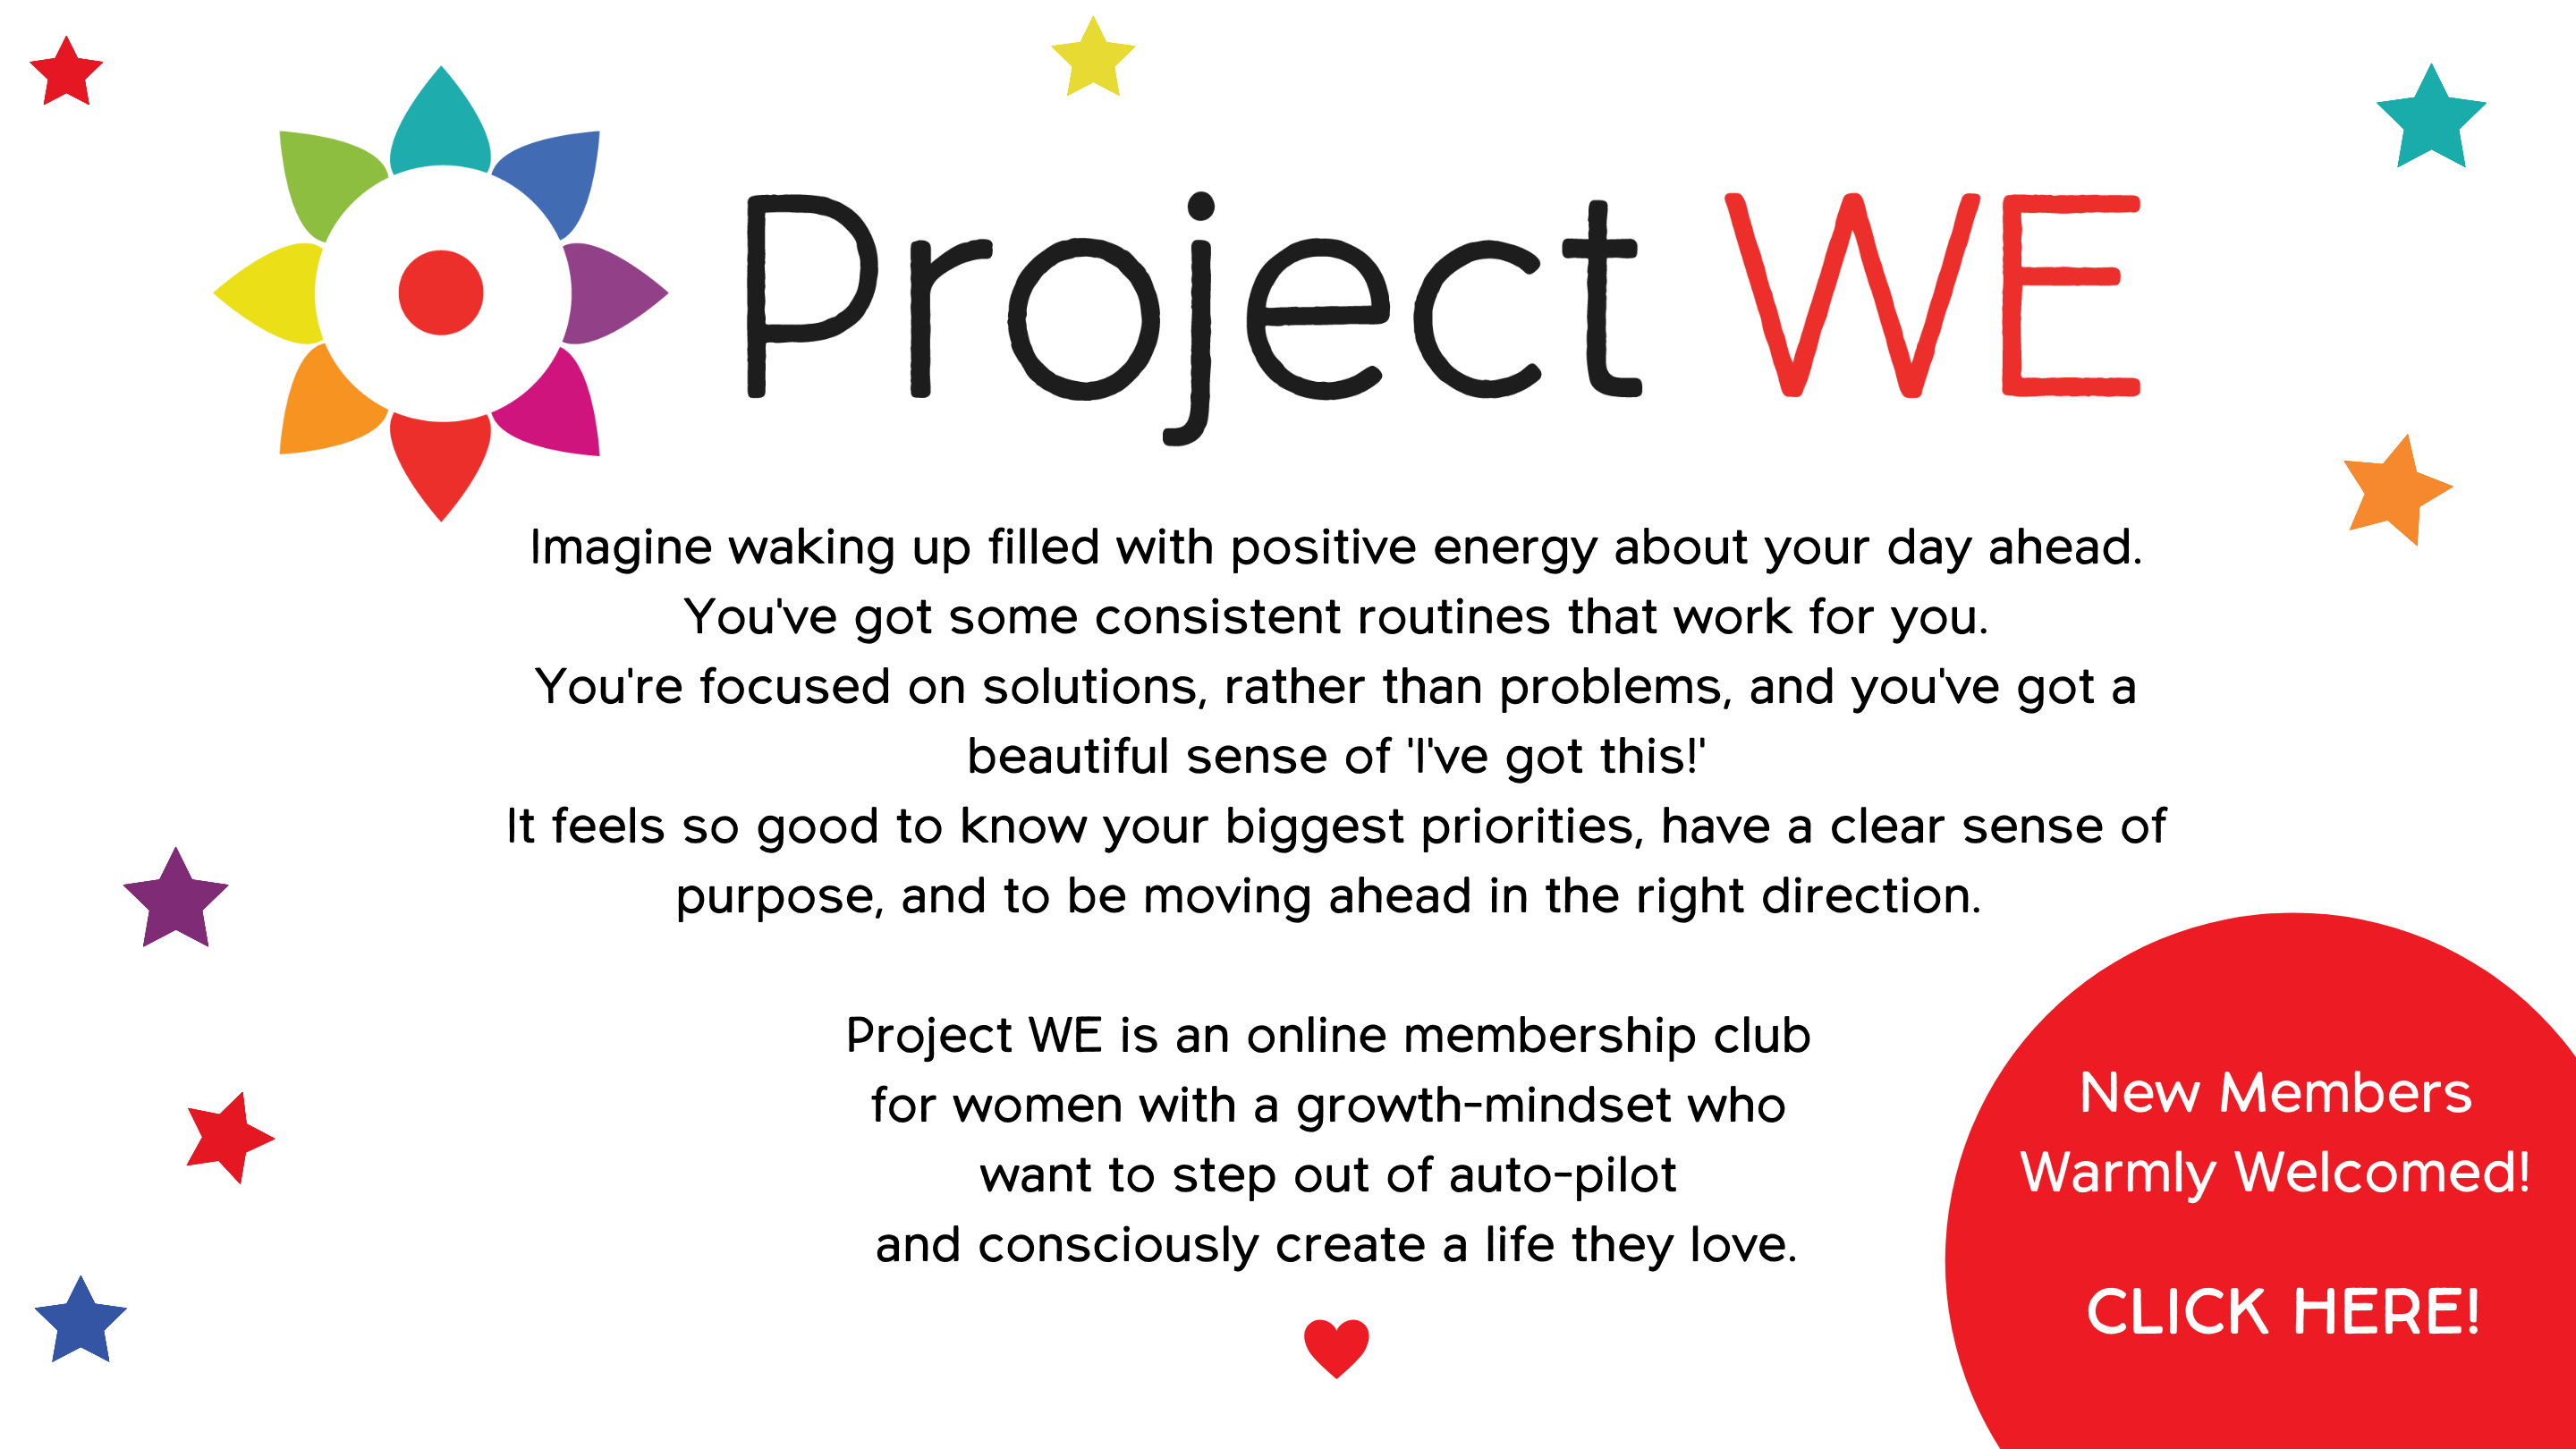 Project WE women's online membership club